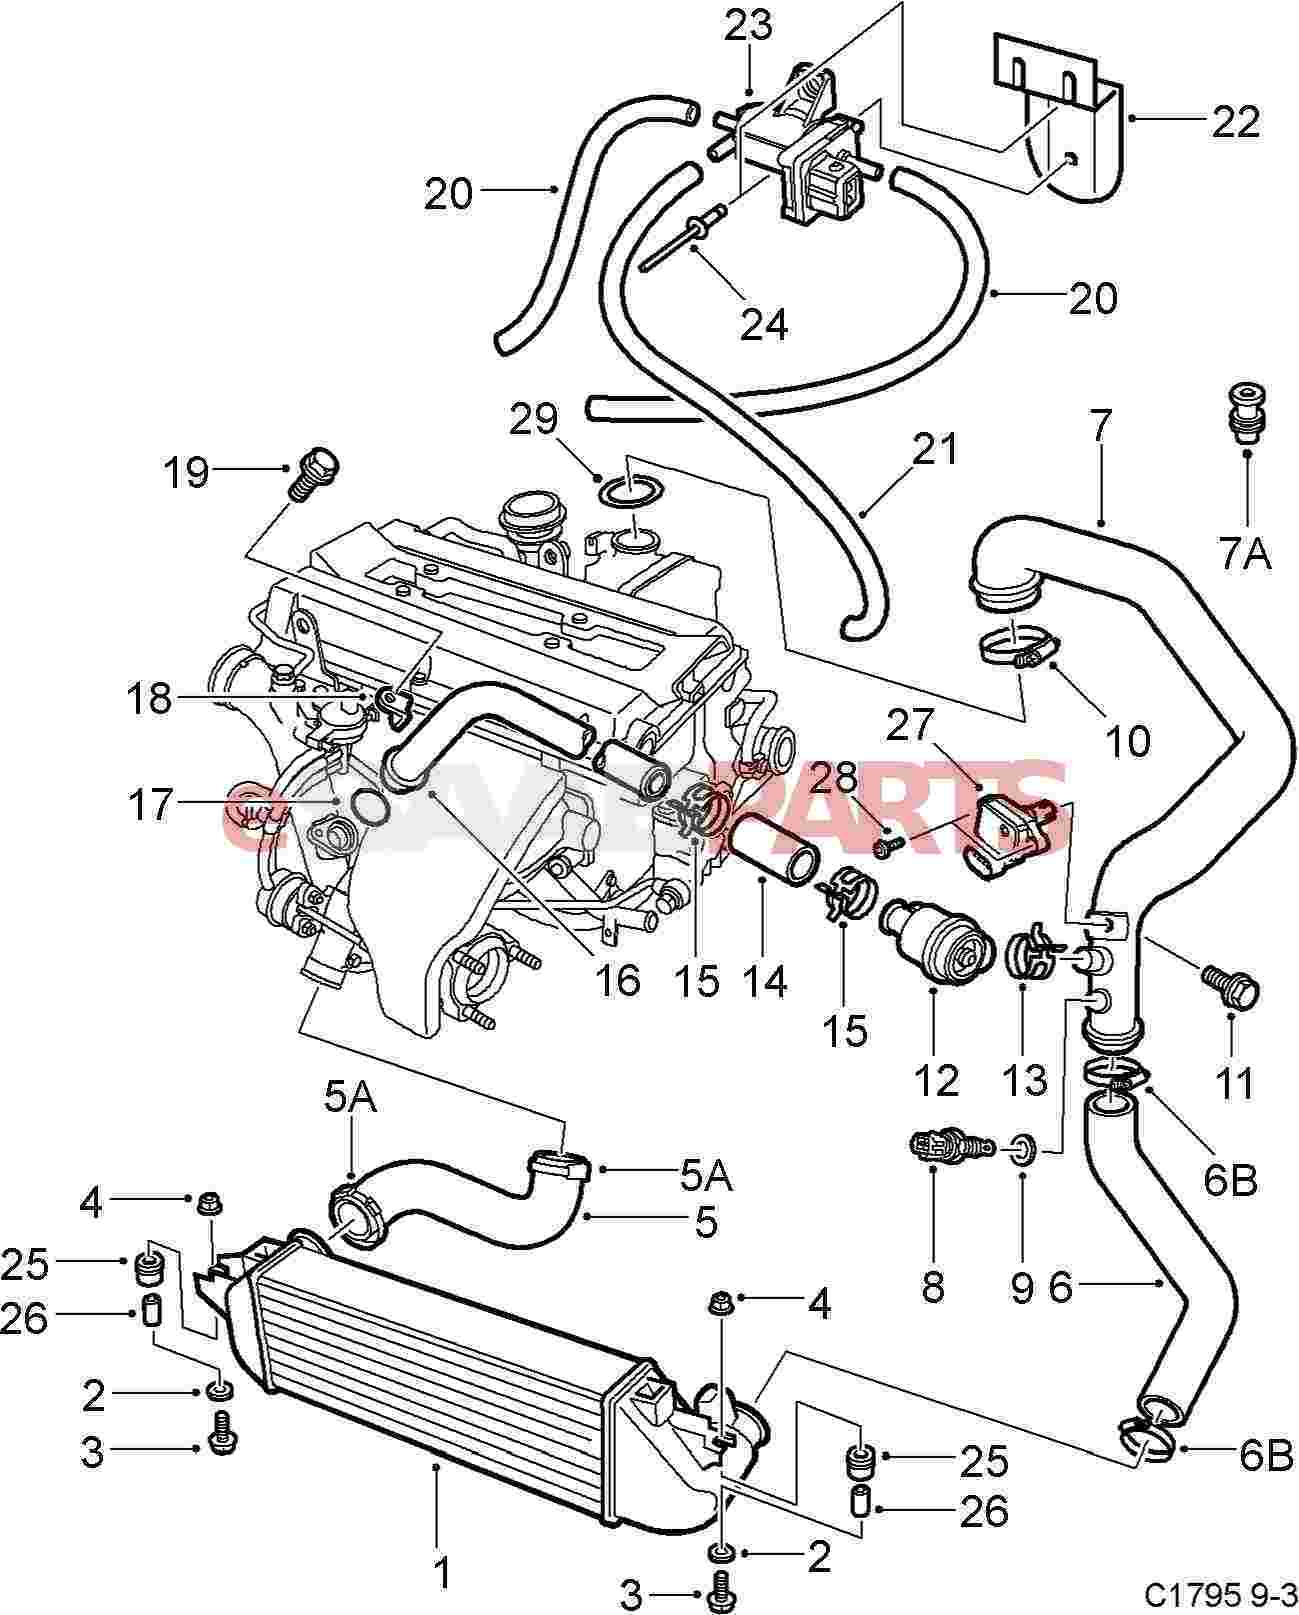 1988 Saab 900 Engine Diagram together with 00 Saab 9 3 Convertible Body Parts further 5jmub Saab 900 Se Turbo Hello Ja Need Change Radiator further 7rkz3 Ford F250 2008 Ford 6 4 Power Stroke Right Turn Signal as well Sunroof Replacement Youtube Html. on saab 900 turbo problems